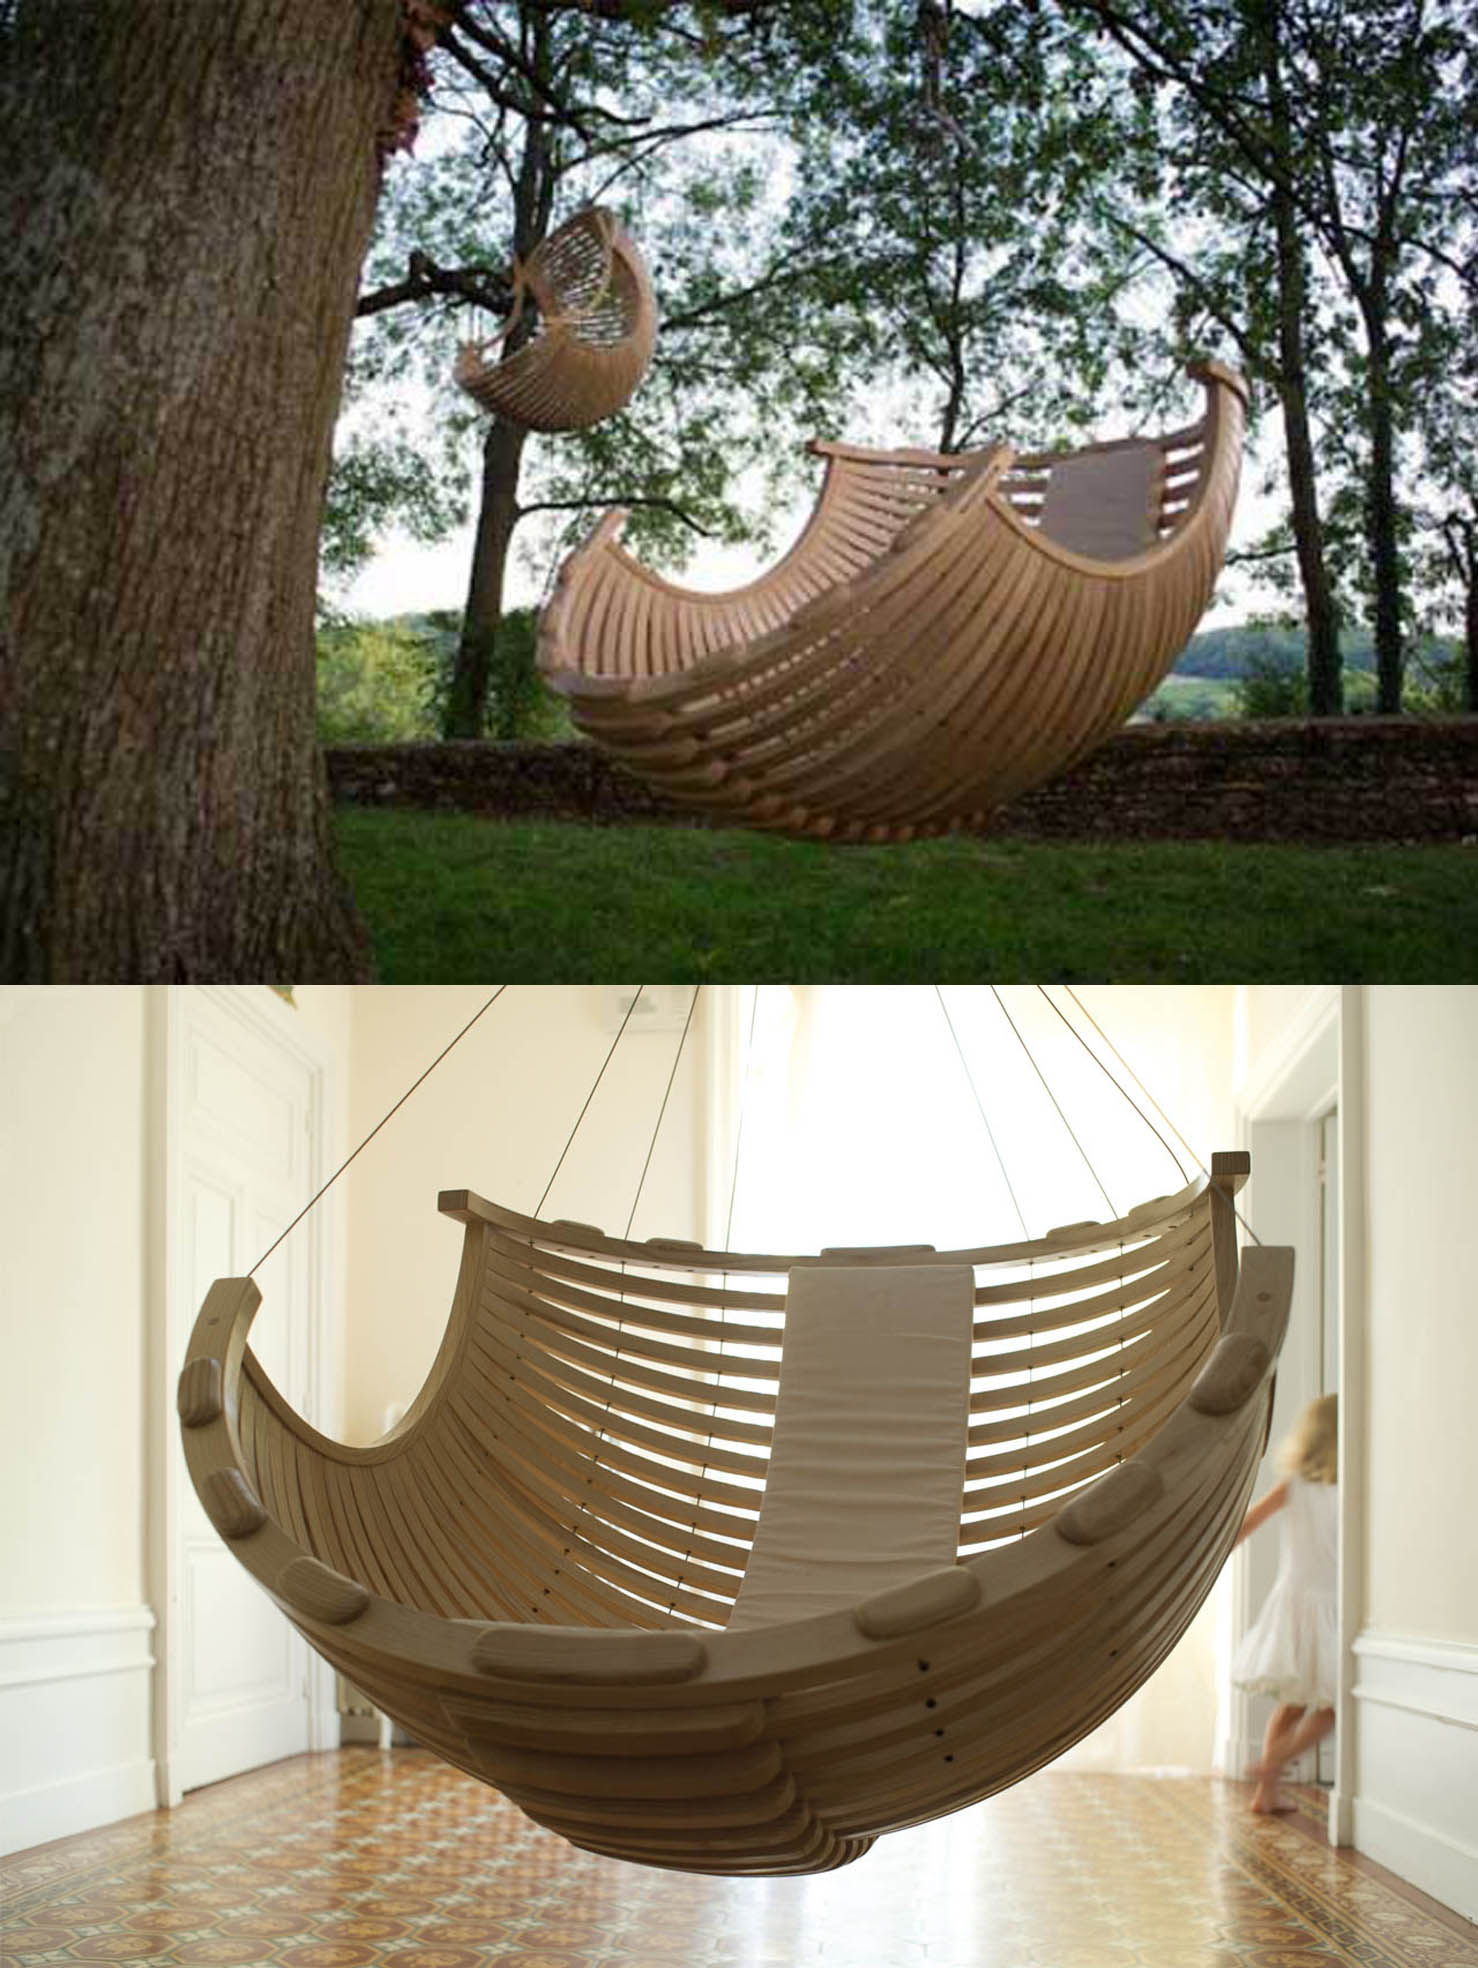 Fantastic Furniture: Outdoor Hanging Chairs - F.I.N.D.S.